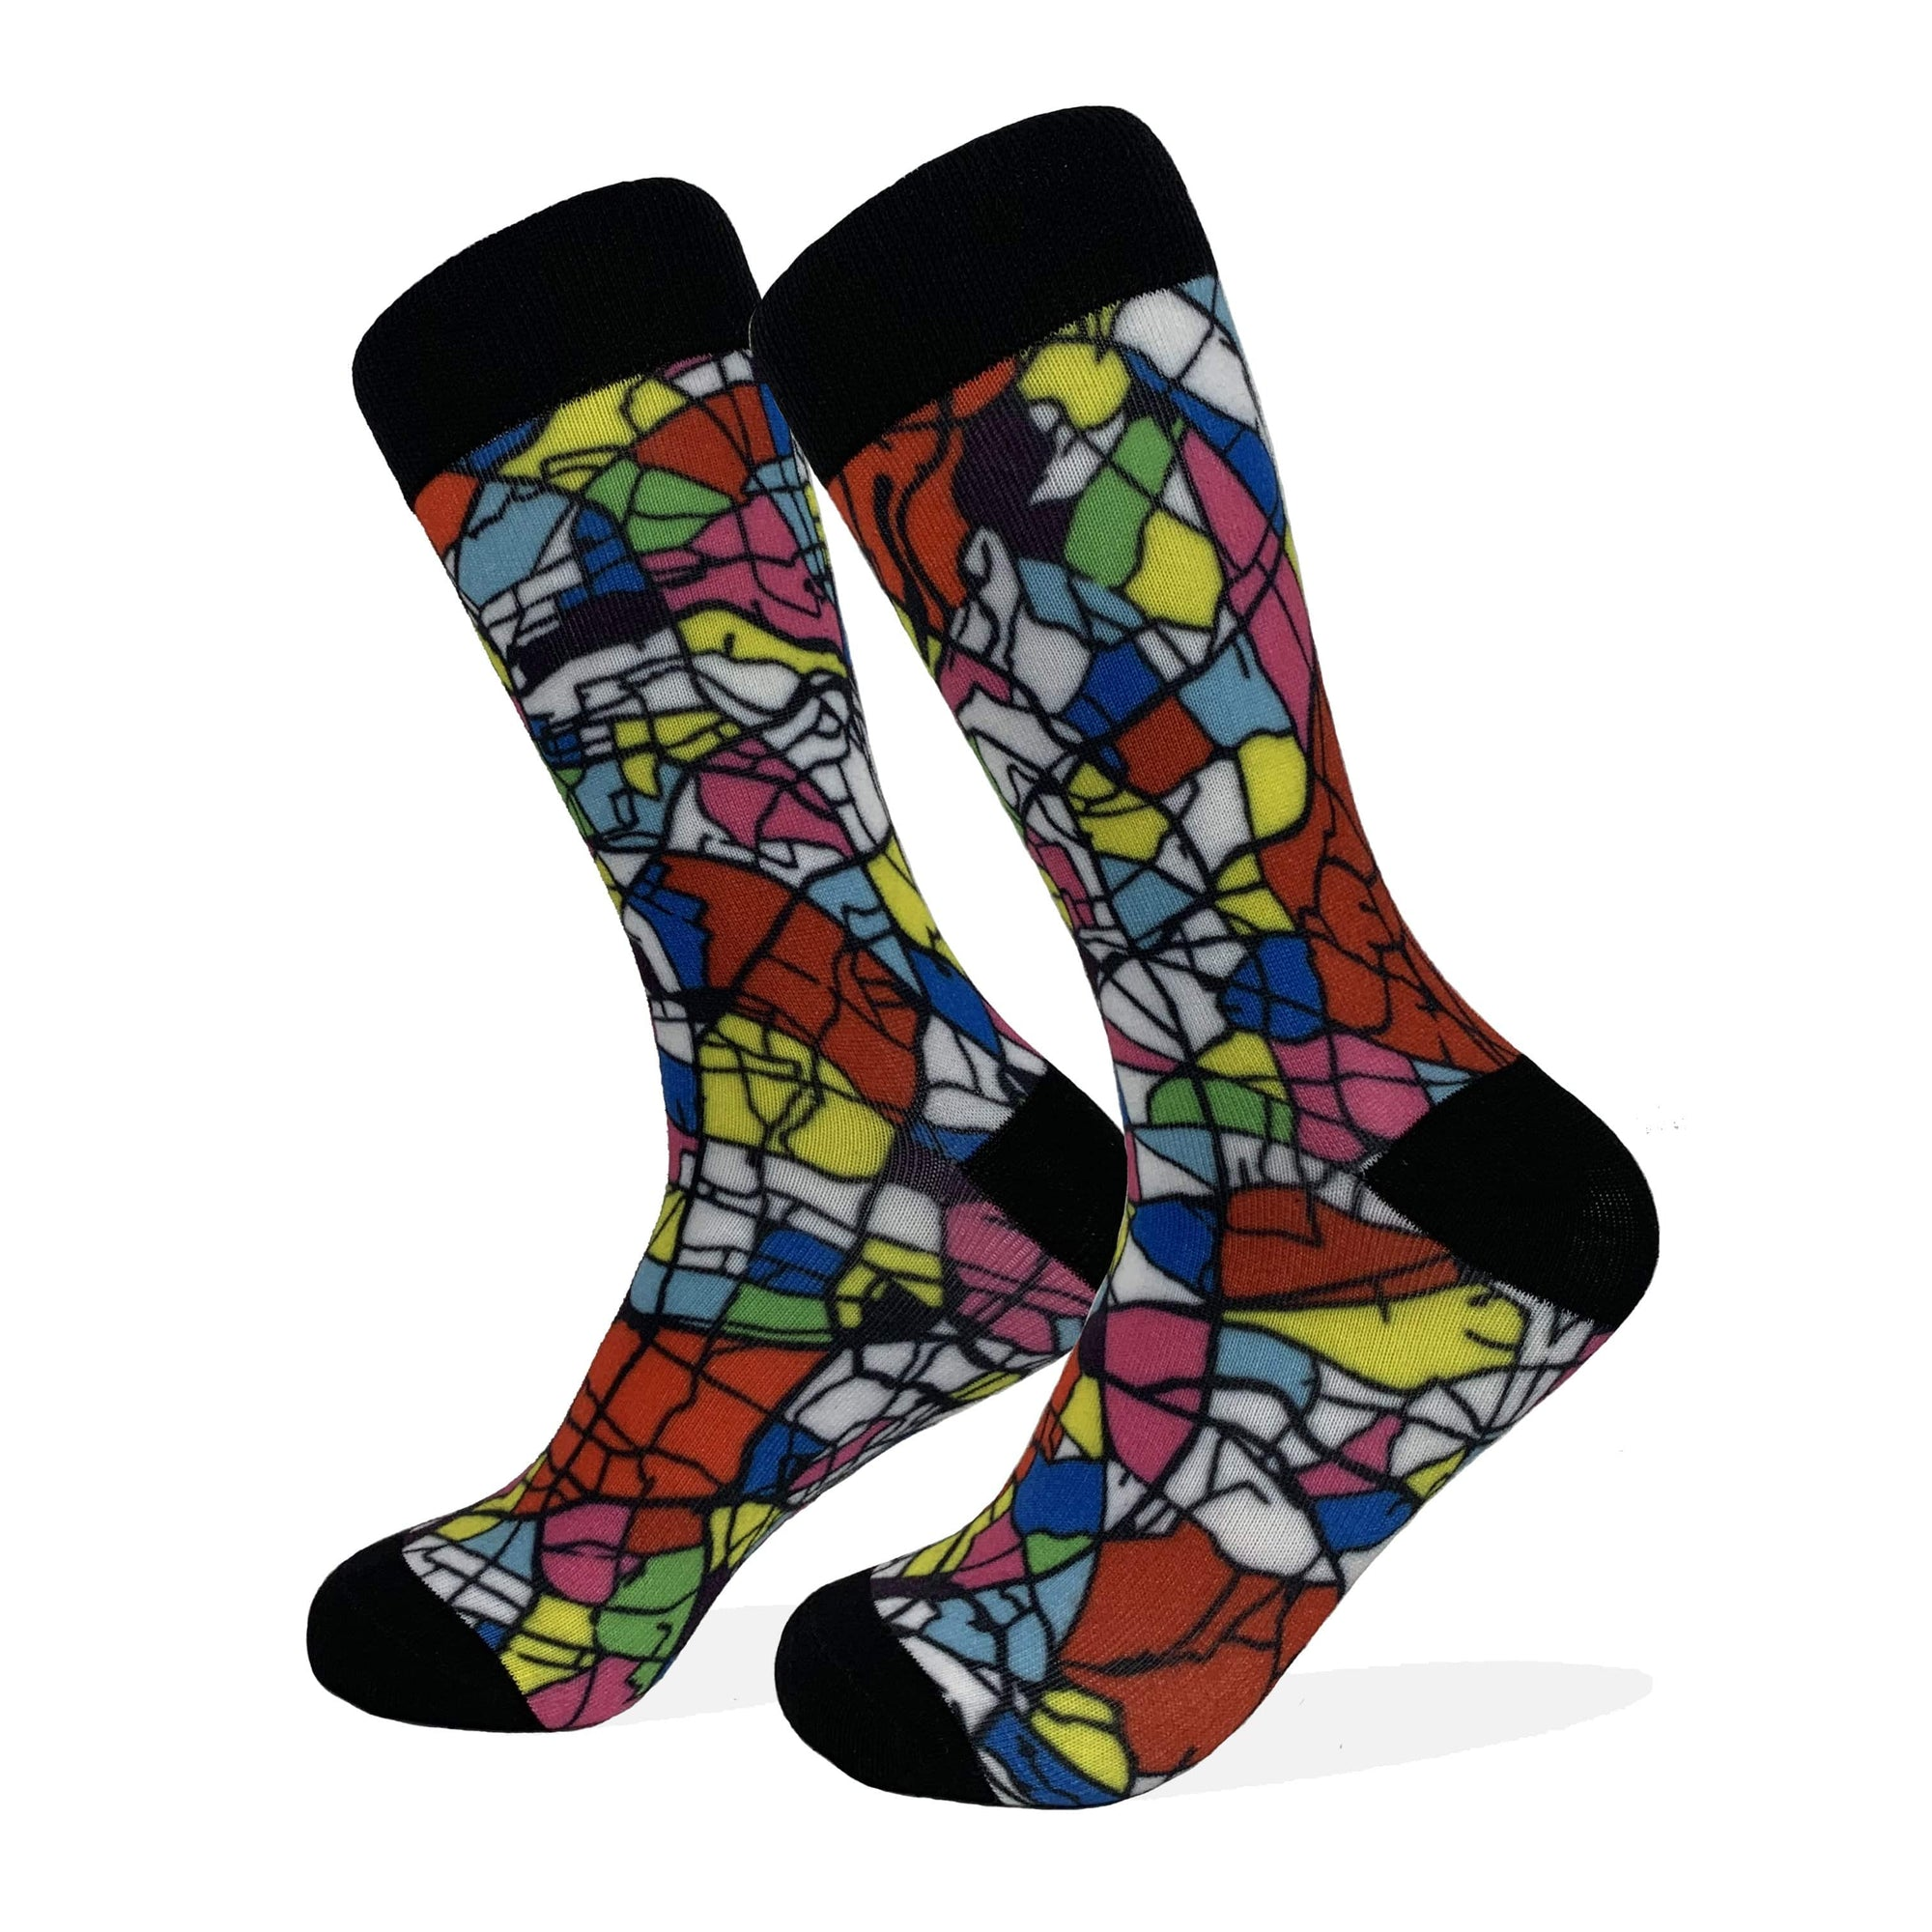 Tokyo Map Socks | Colorful & Funky Socks | Multi-Color